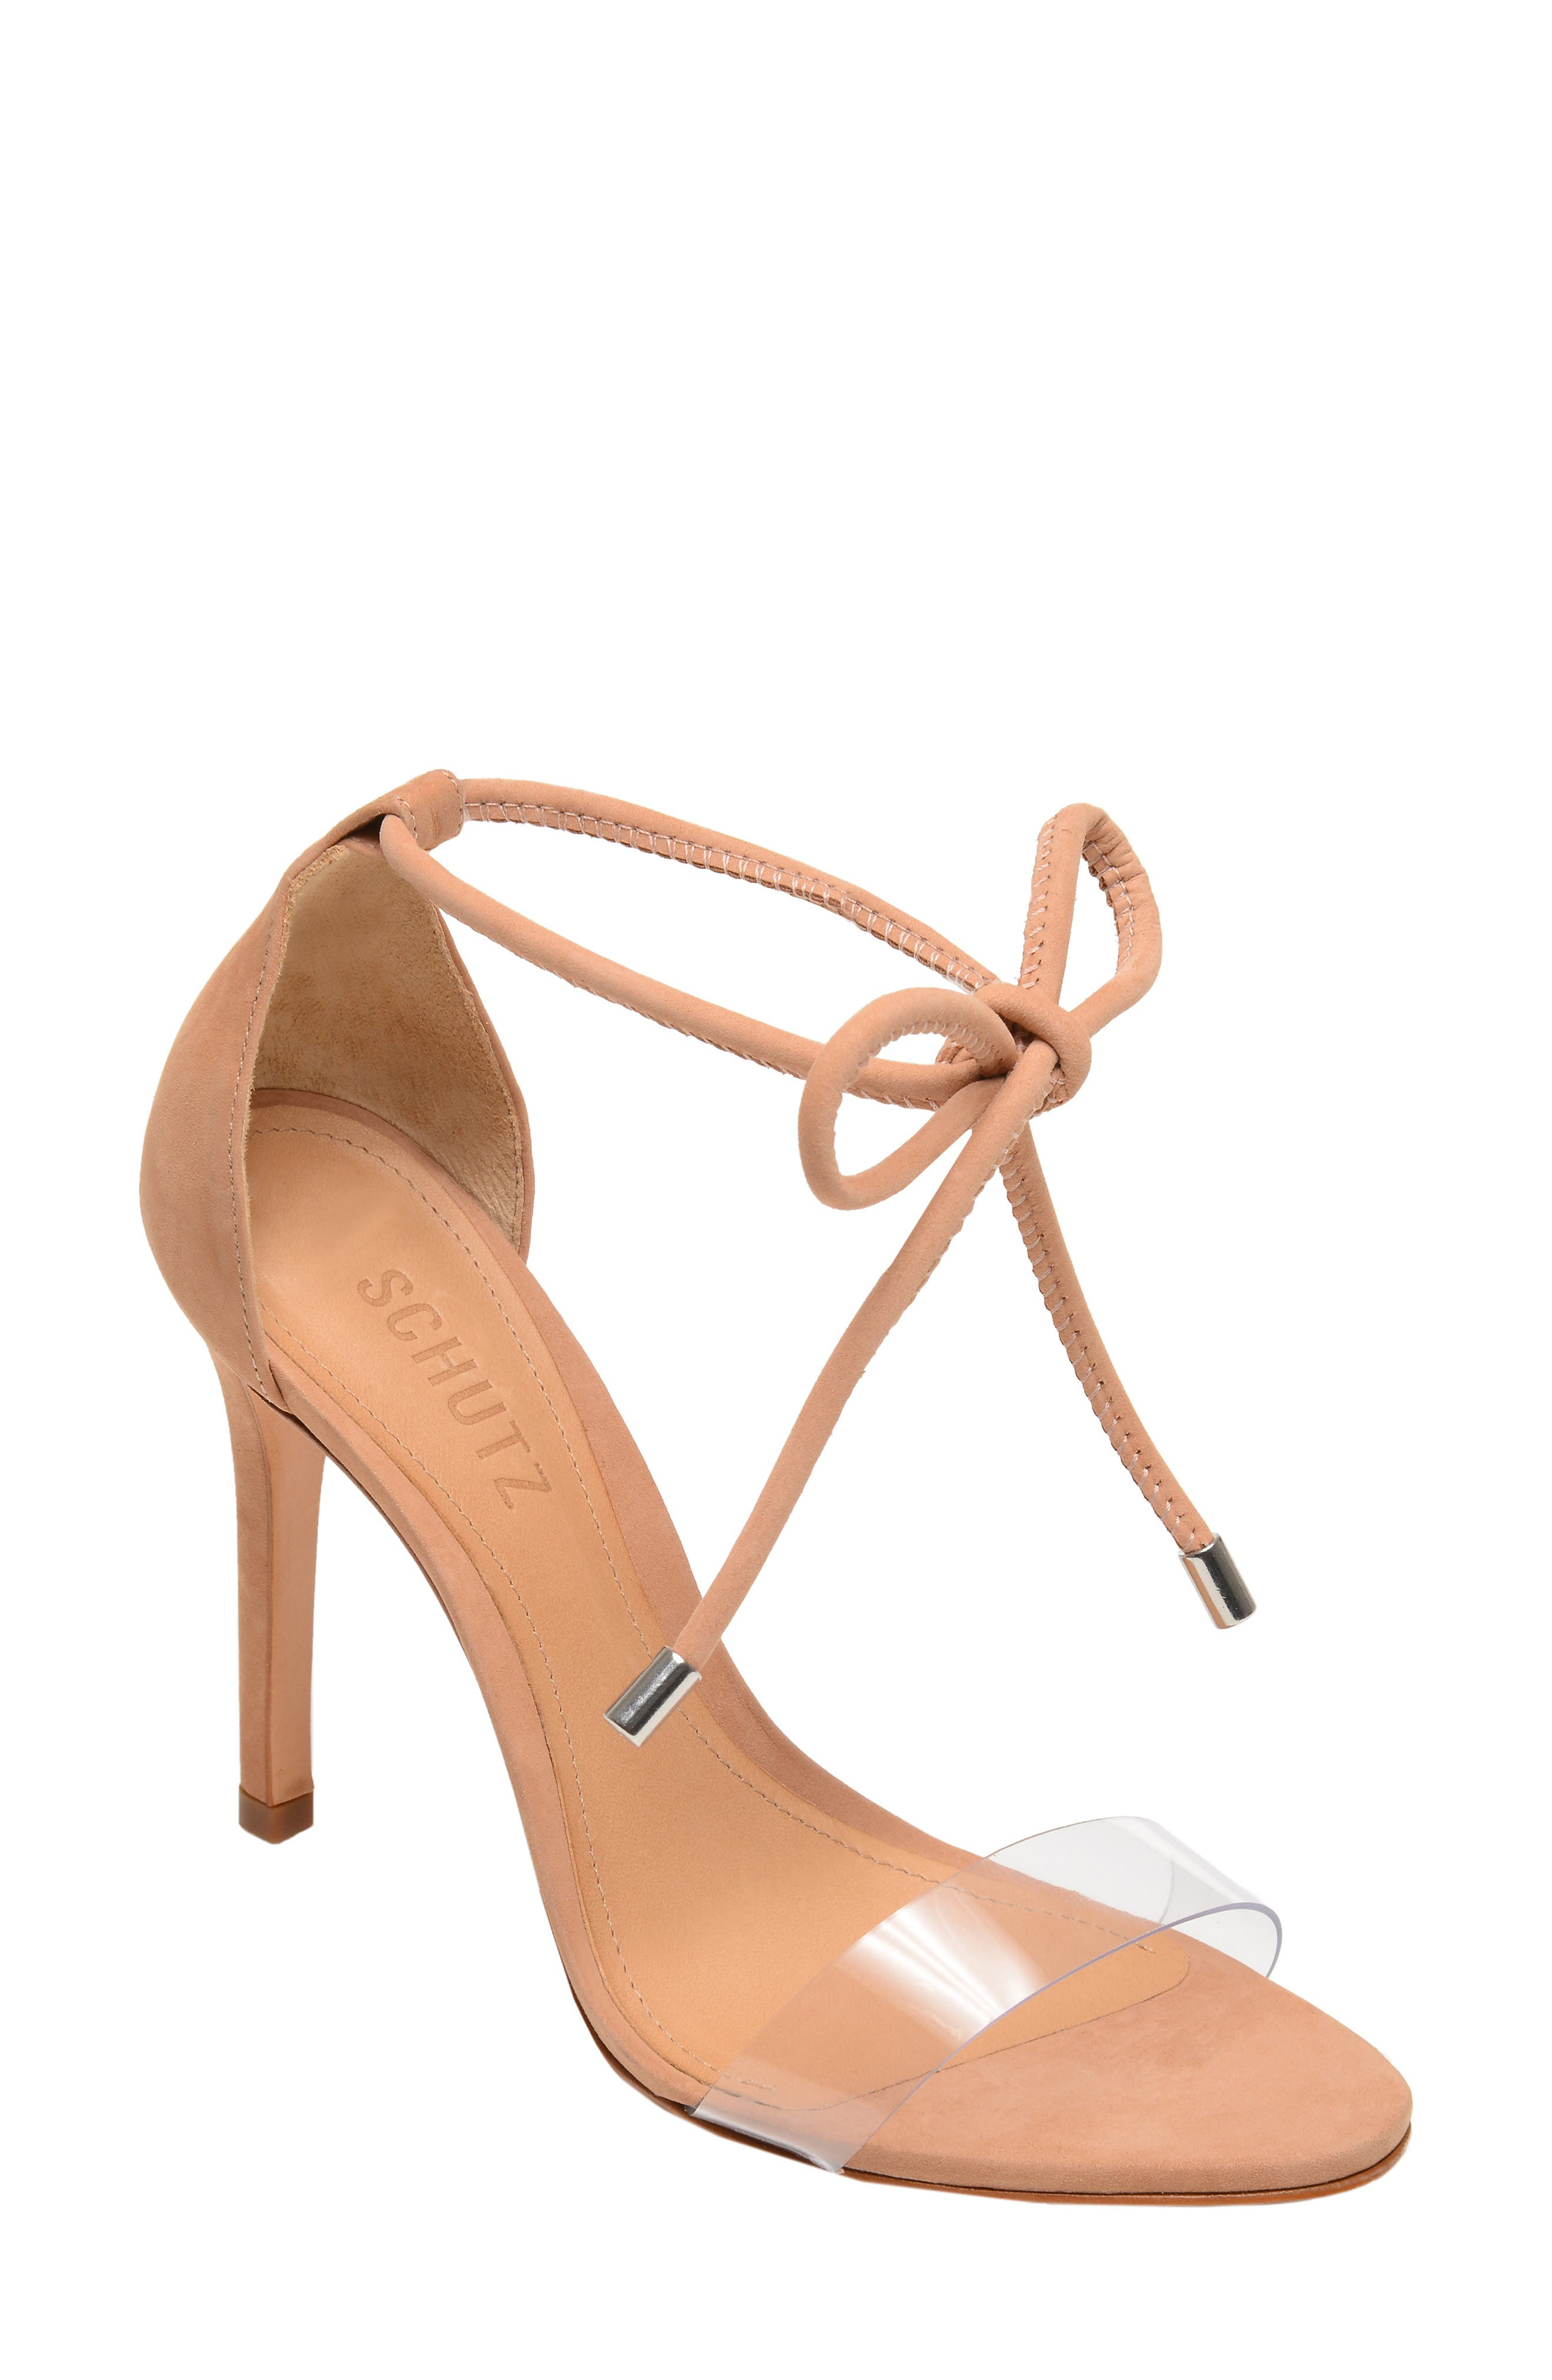 Shutz Monique Ankle Tie Sandal,                         Main,                         color, TRANSPARENT/ HONEY BEIGE